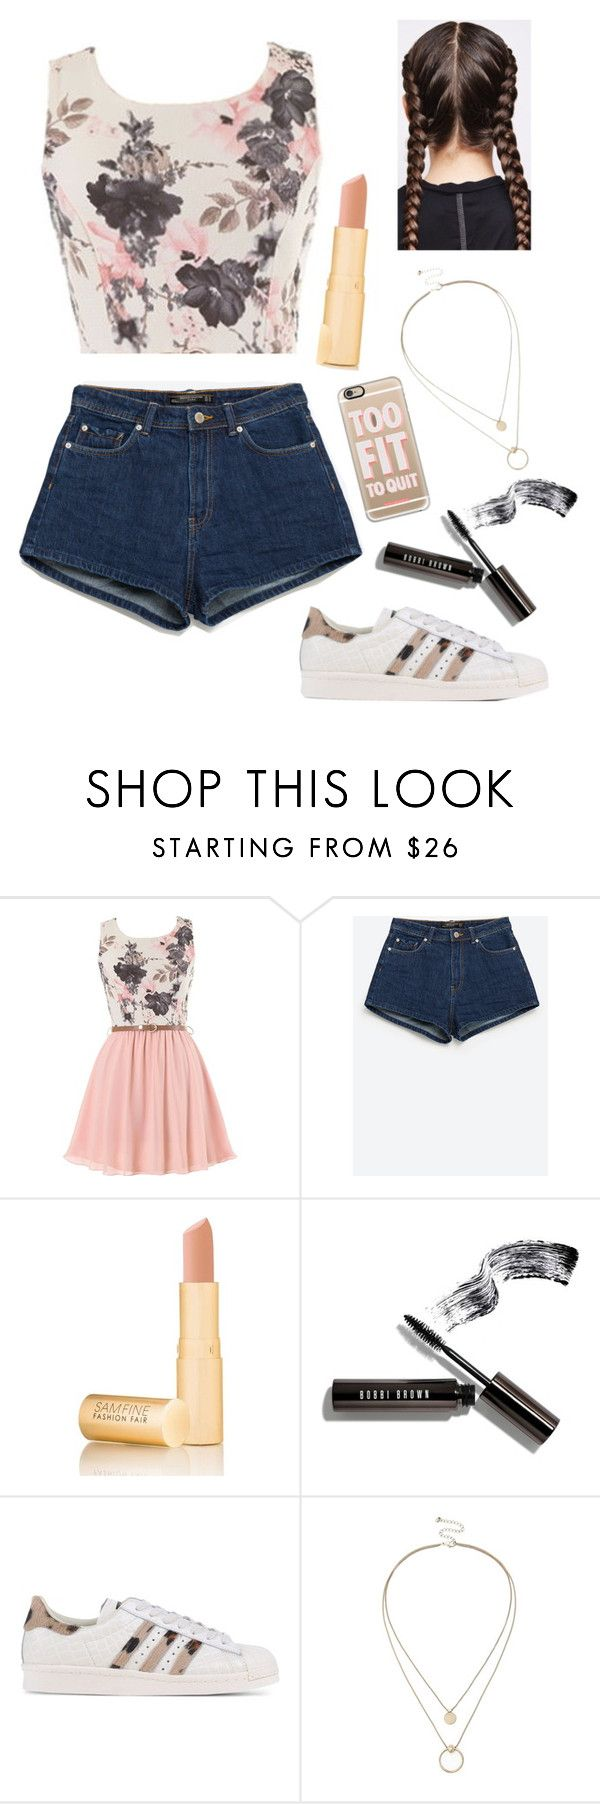 """""""Untitled #5"""" by breanna113 ❤ liked on Polyvore featuring Zara, Fashion Fair, Bobbi Brown Cosmetics, adidas Originals, Sole Society and Casetify"""